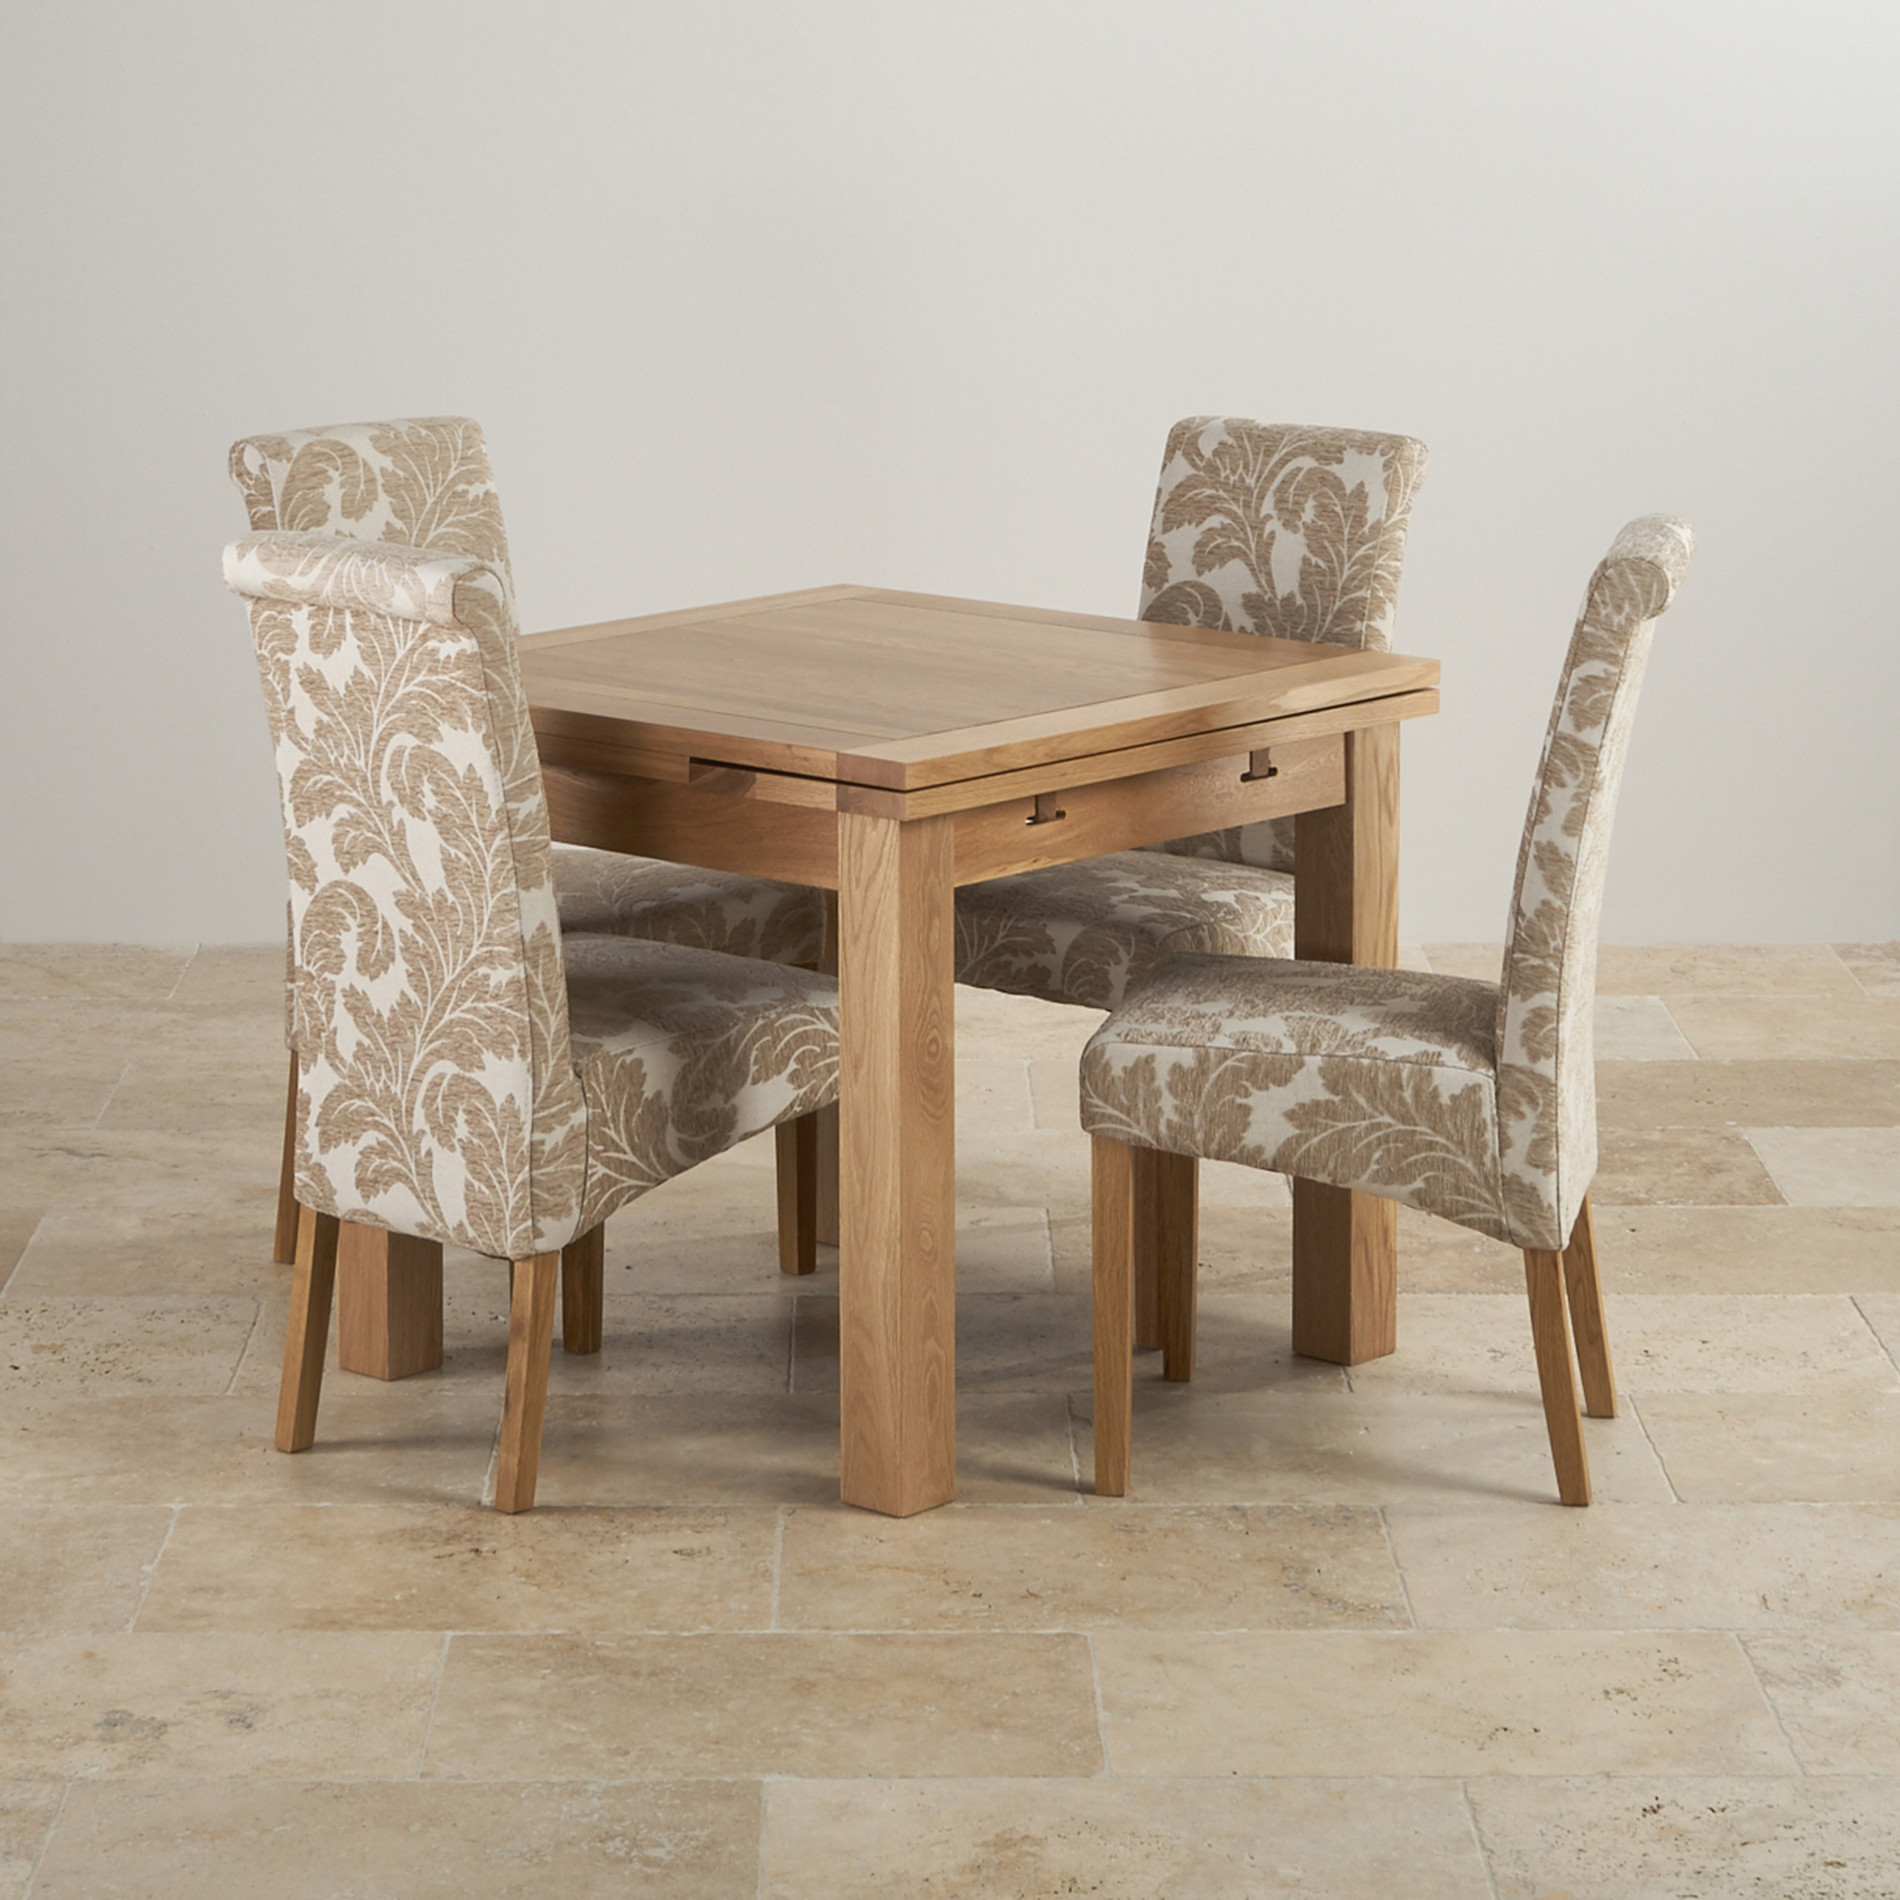 Oak Dining Room Furniture: 3ft Table With 4 Beige Chairs